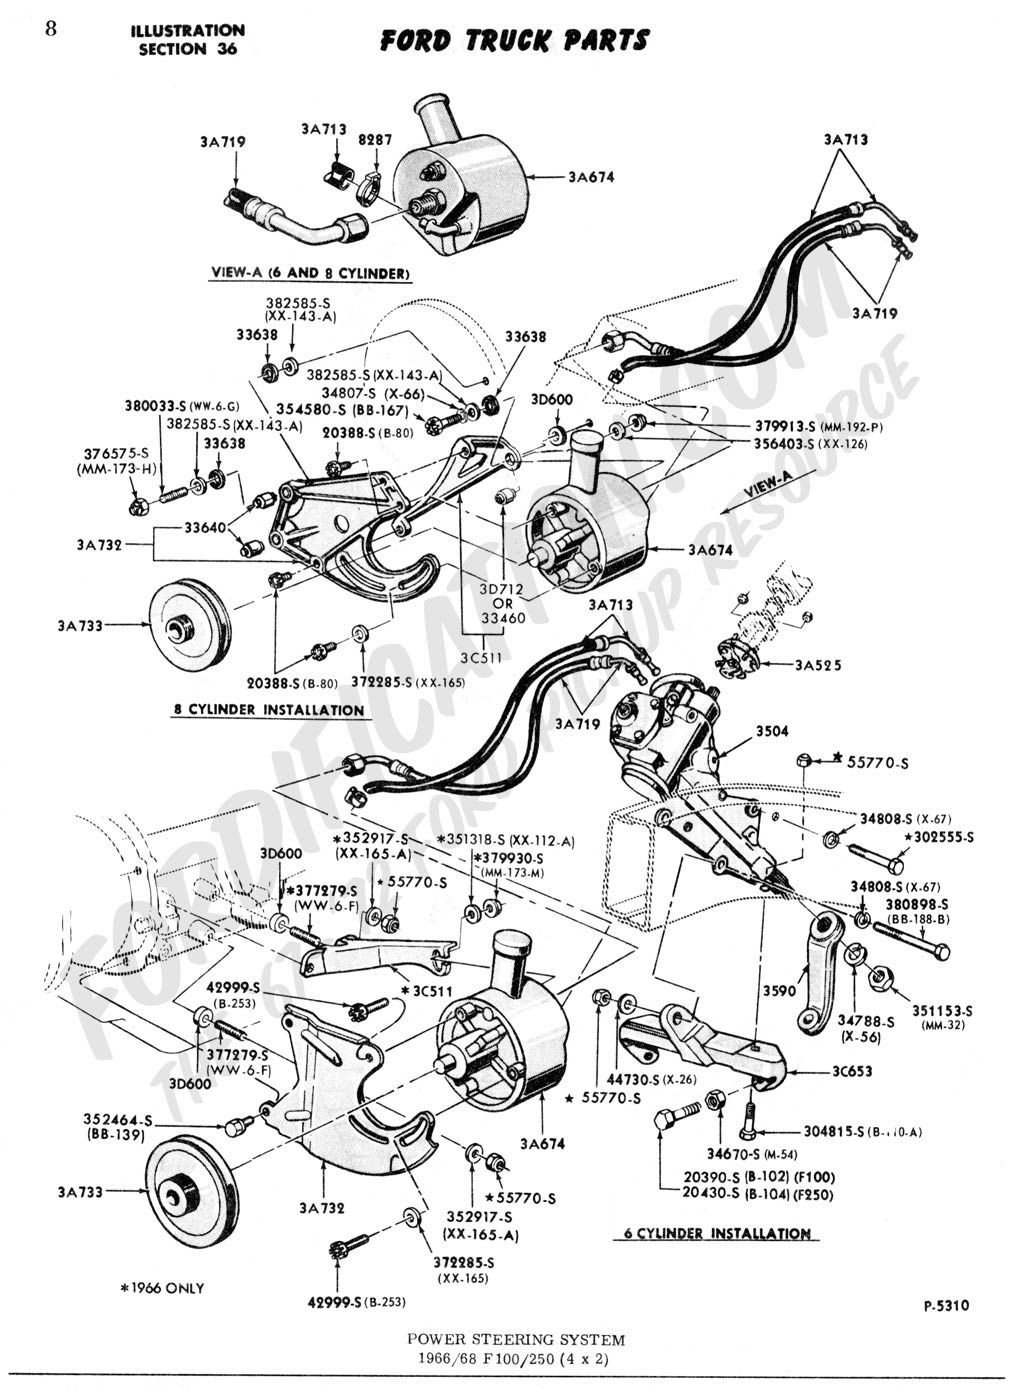 Wiring Diagram For 64 Falcon Steering Column Simple Guide About 1960 Impala Engine Schematics 1963 Ford